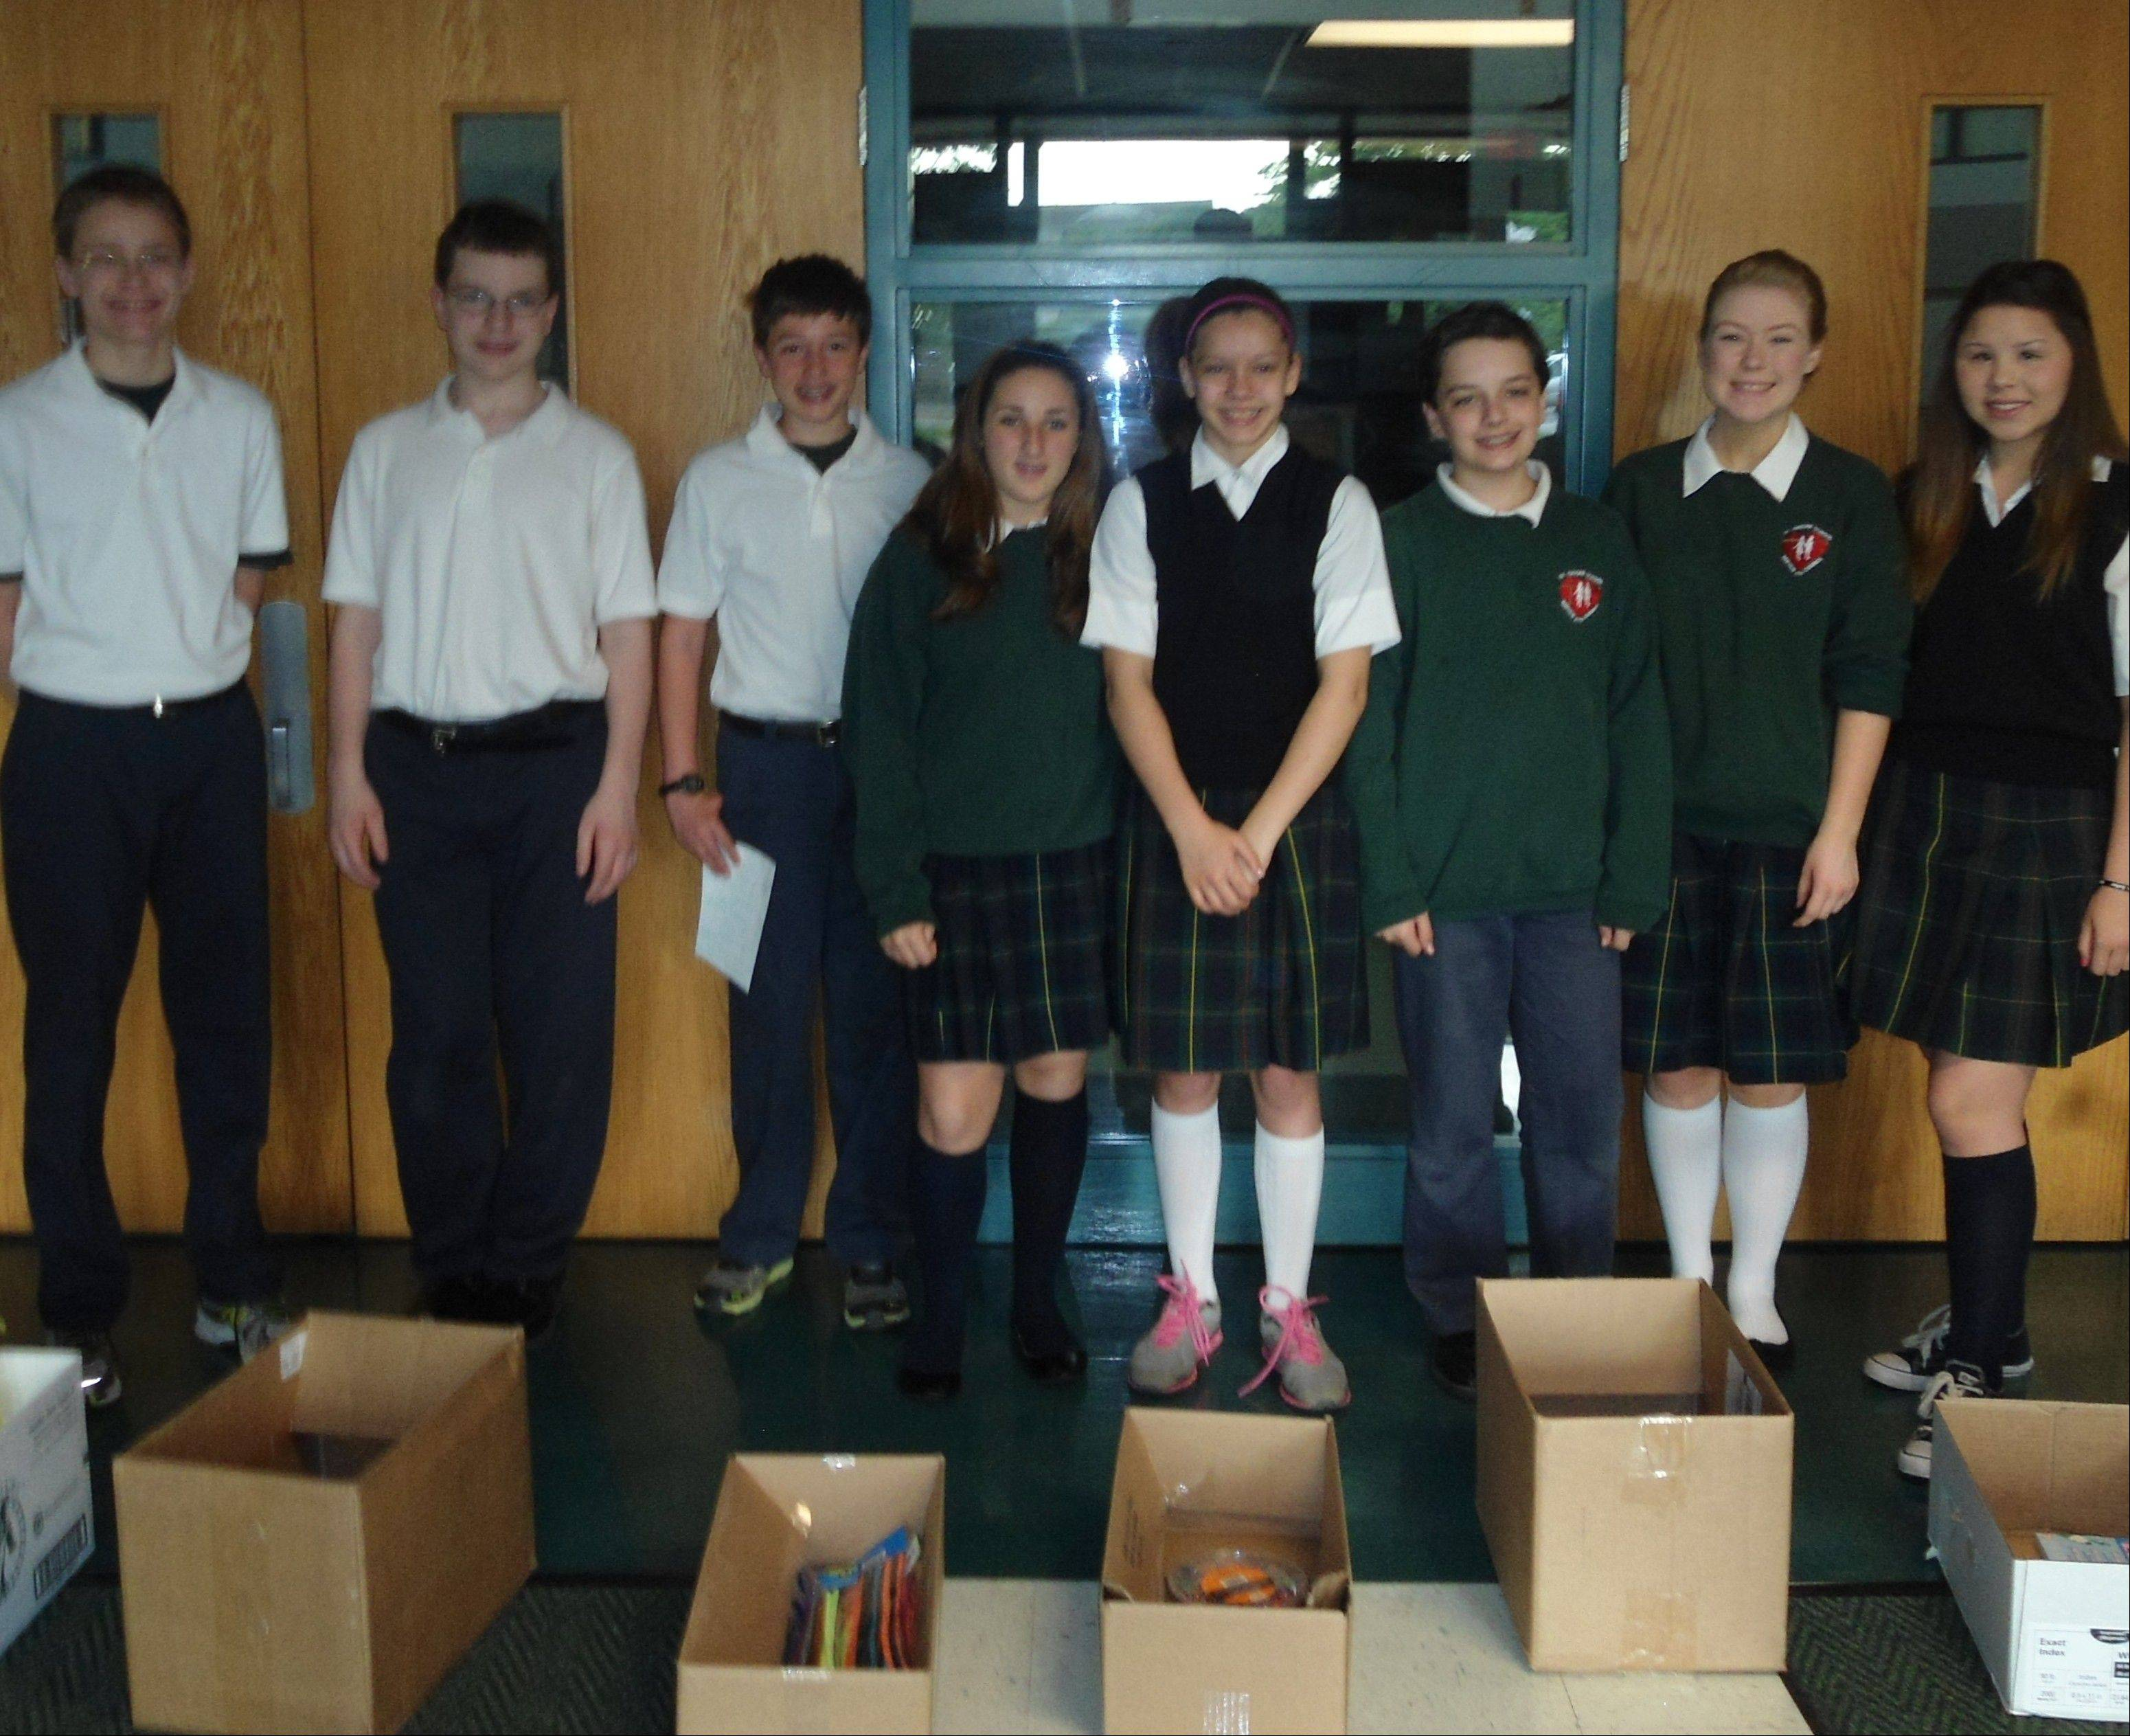 Leadership Academy members who collected craft supplies at St. Isidore School are, from left, Henry Breyne, Brendan Dunbar, Zach Barry, Isabella Sansone, Jenny Hauser, Donovan Maloney, Olivia Dorman and Jenna Jamieson. Not pictured: Marissa Testolin.